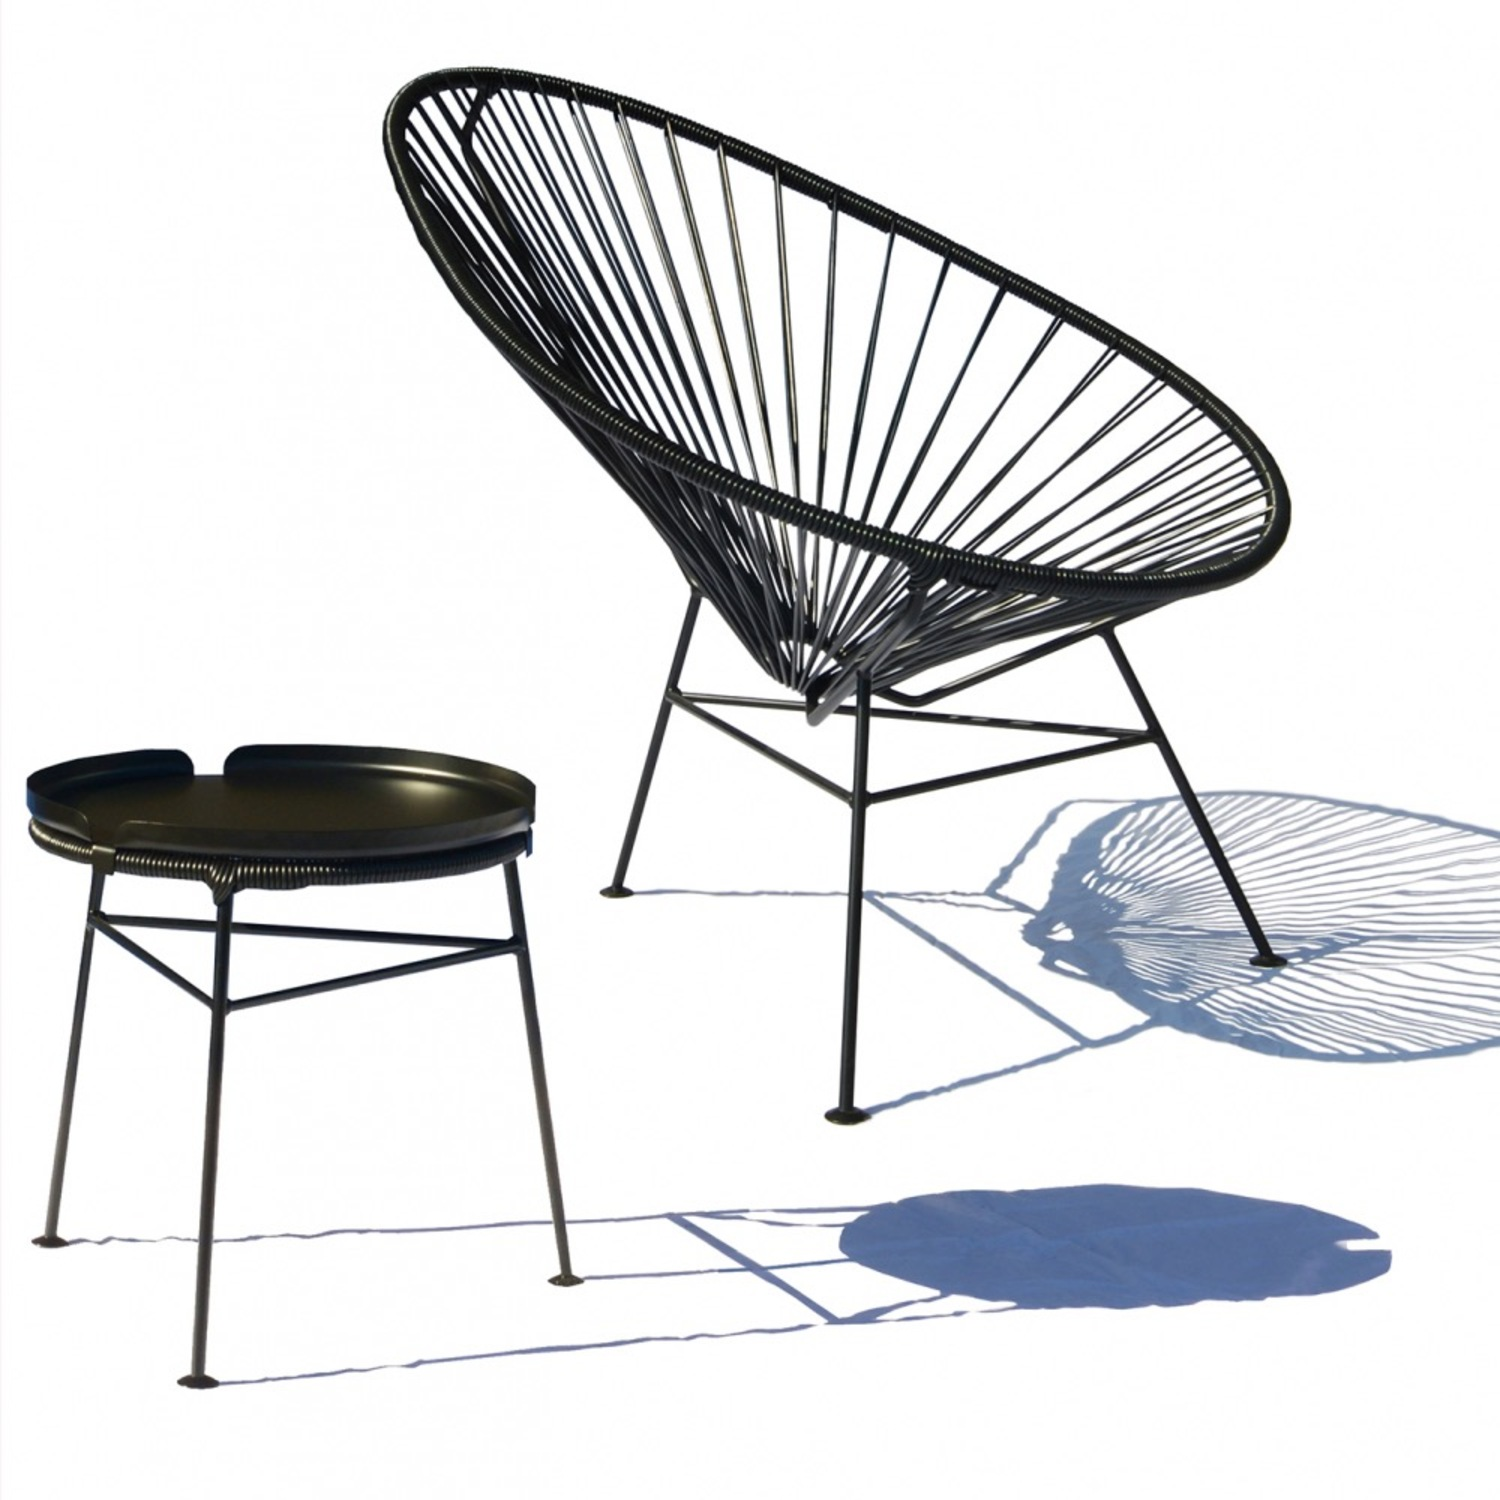 Crate & Barrel Black Spindle Lounge Chair - image-4